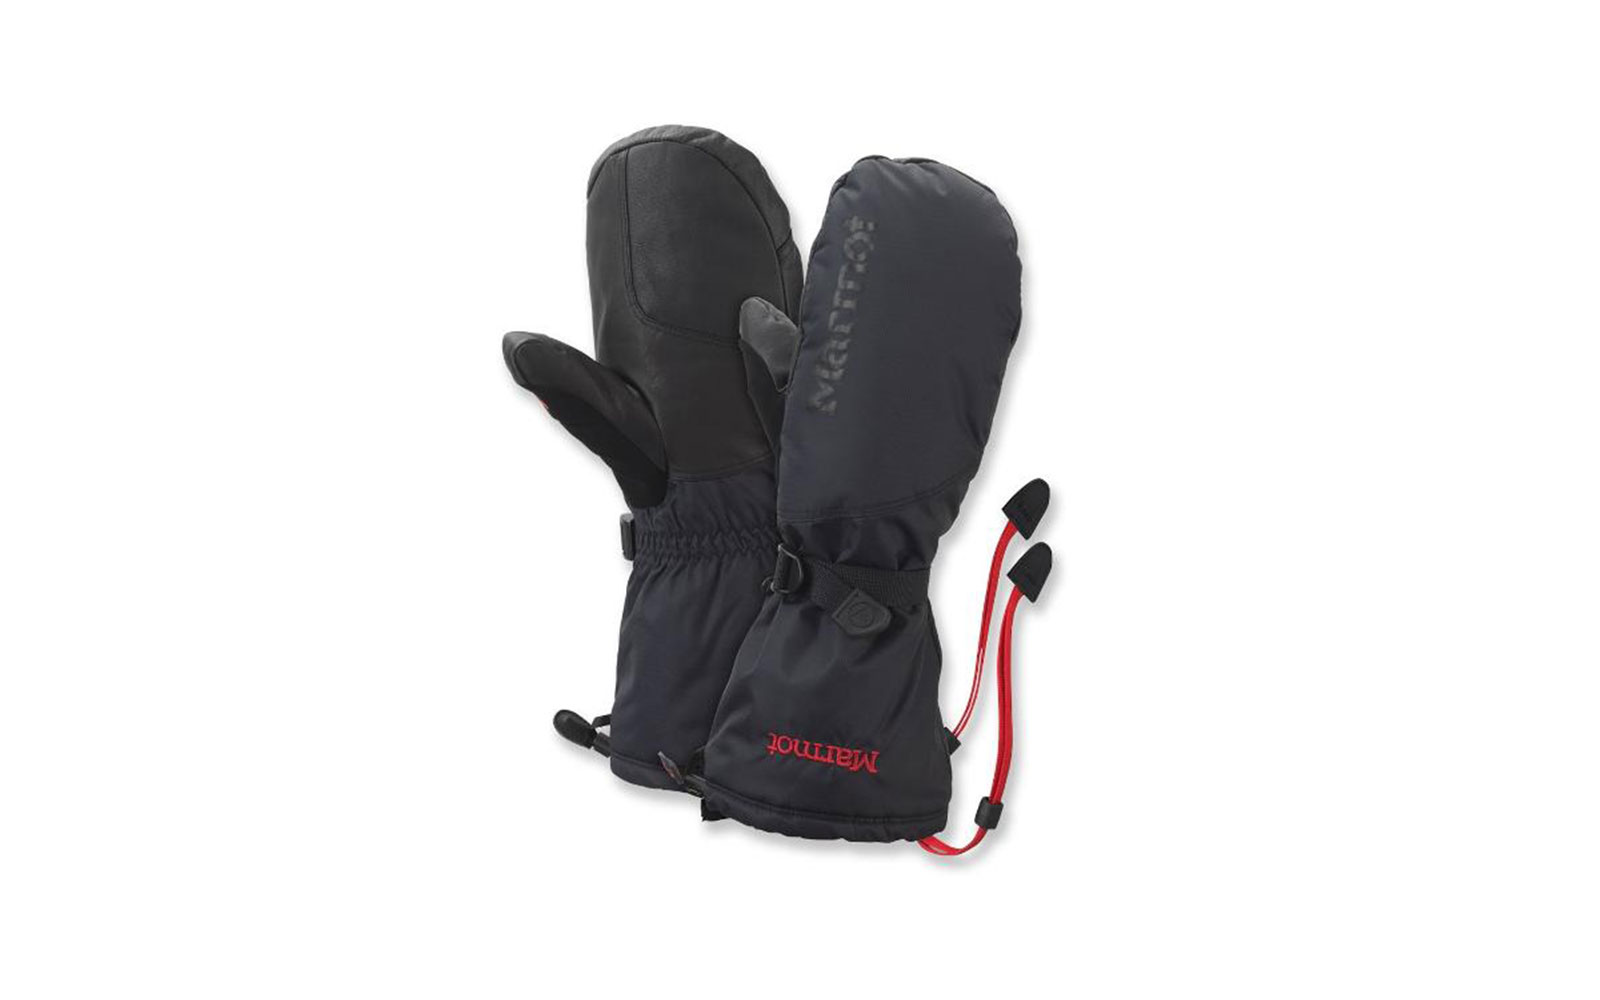 Marmot expedition mittens